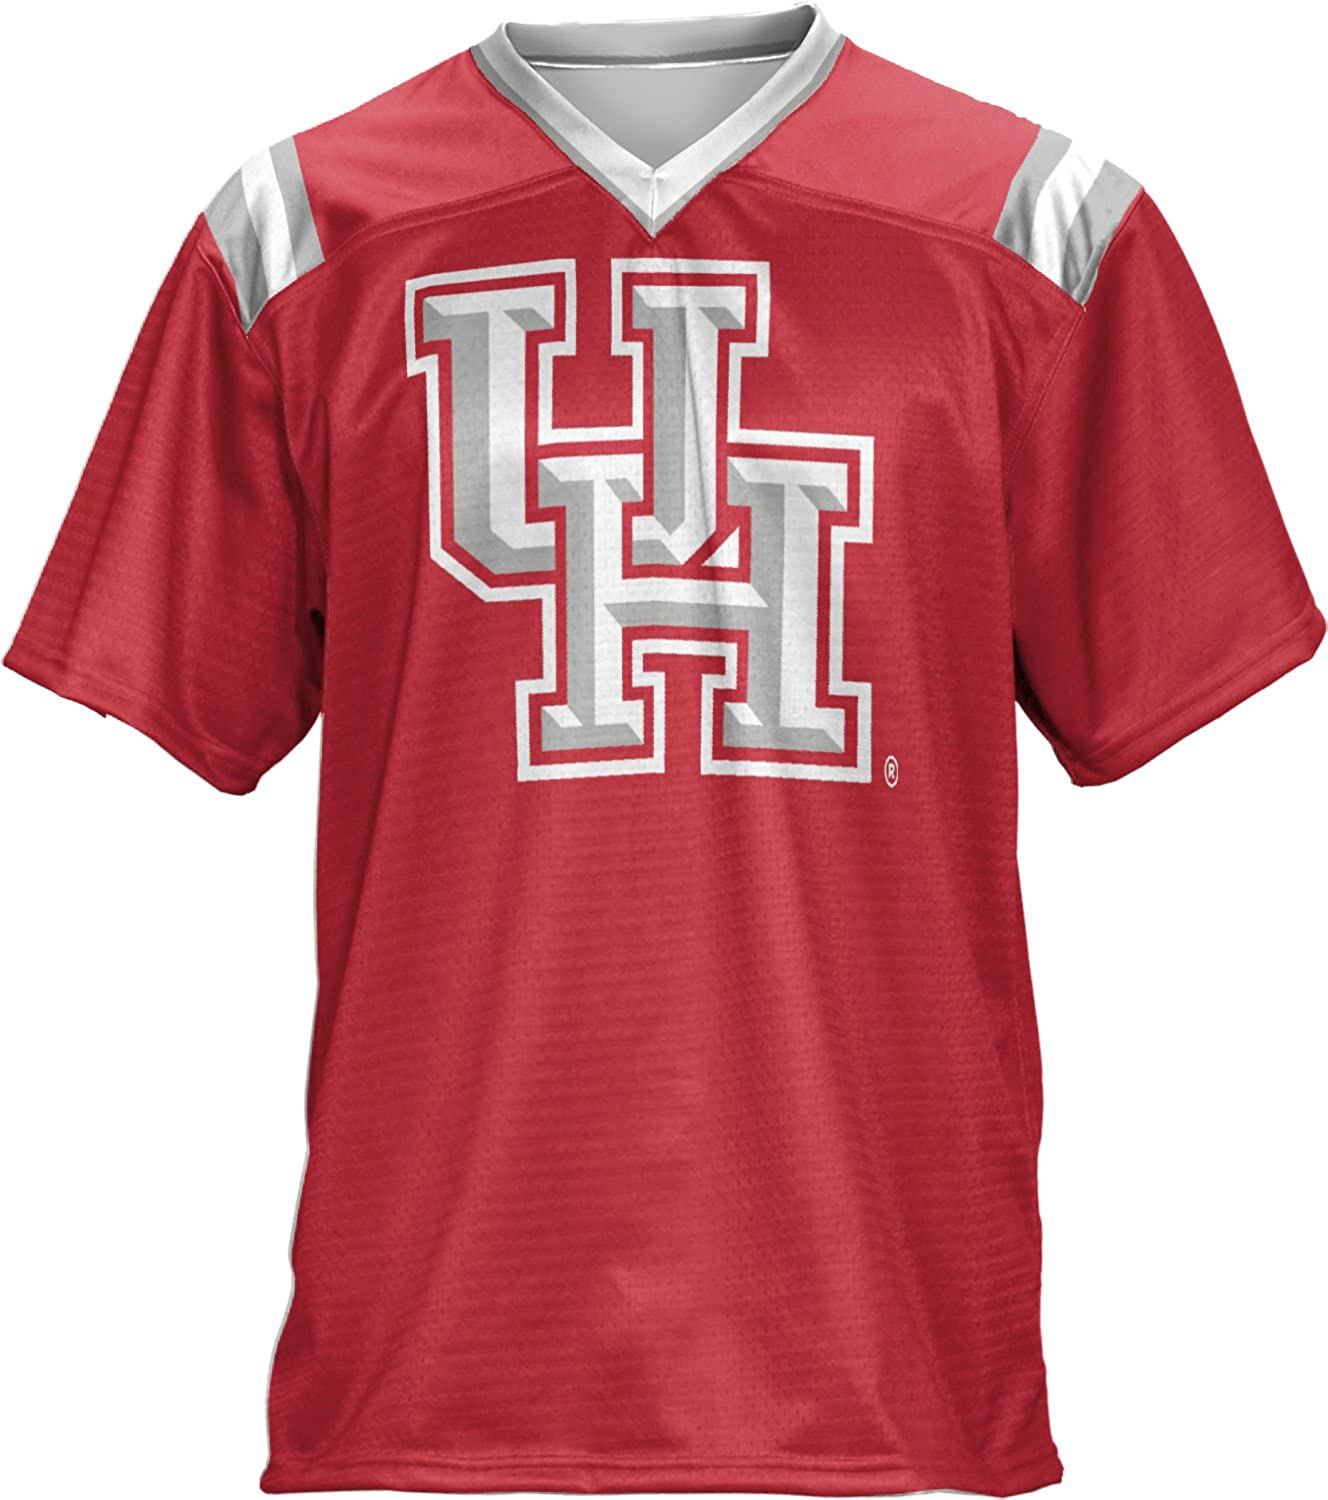 ProSphere University of Houston Boys' Football Jersey (Goal Line)